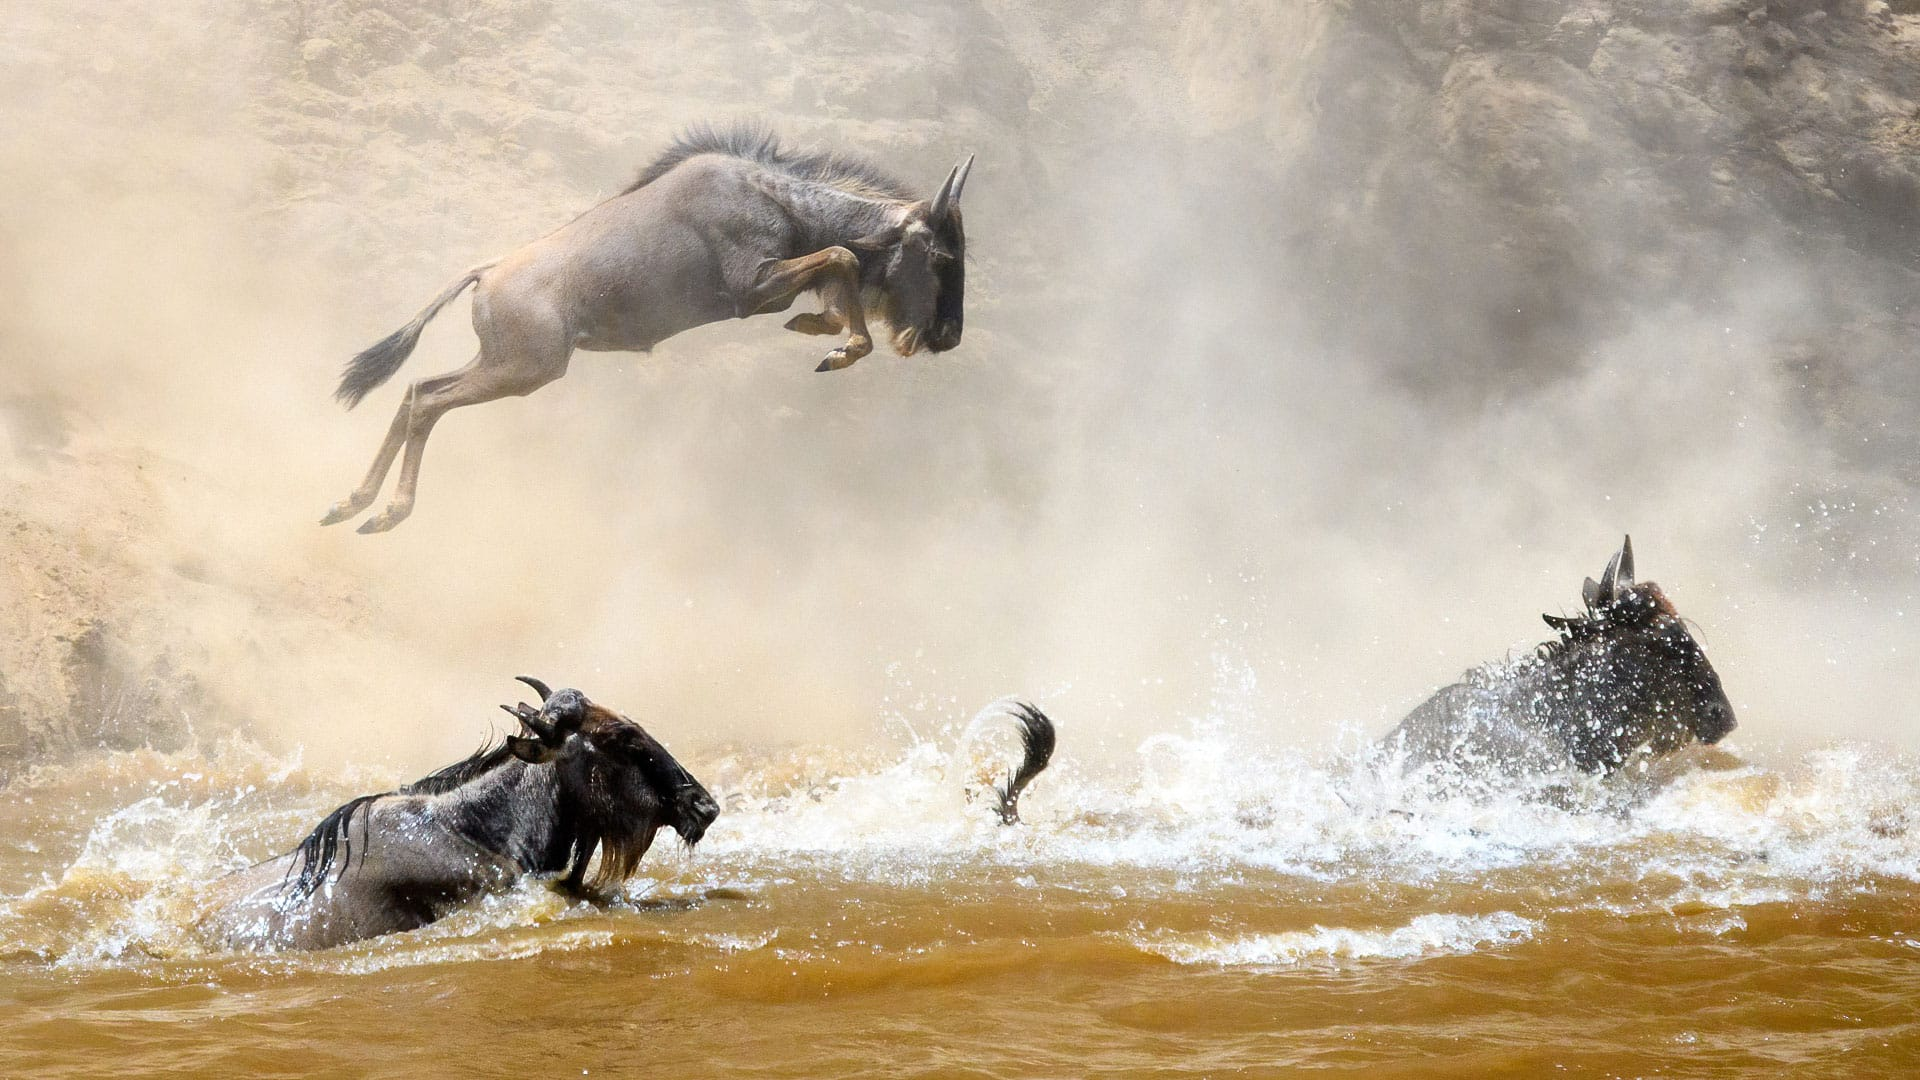 Wildebeest Leaping Mara River Great Migration